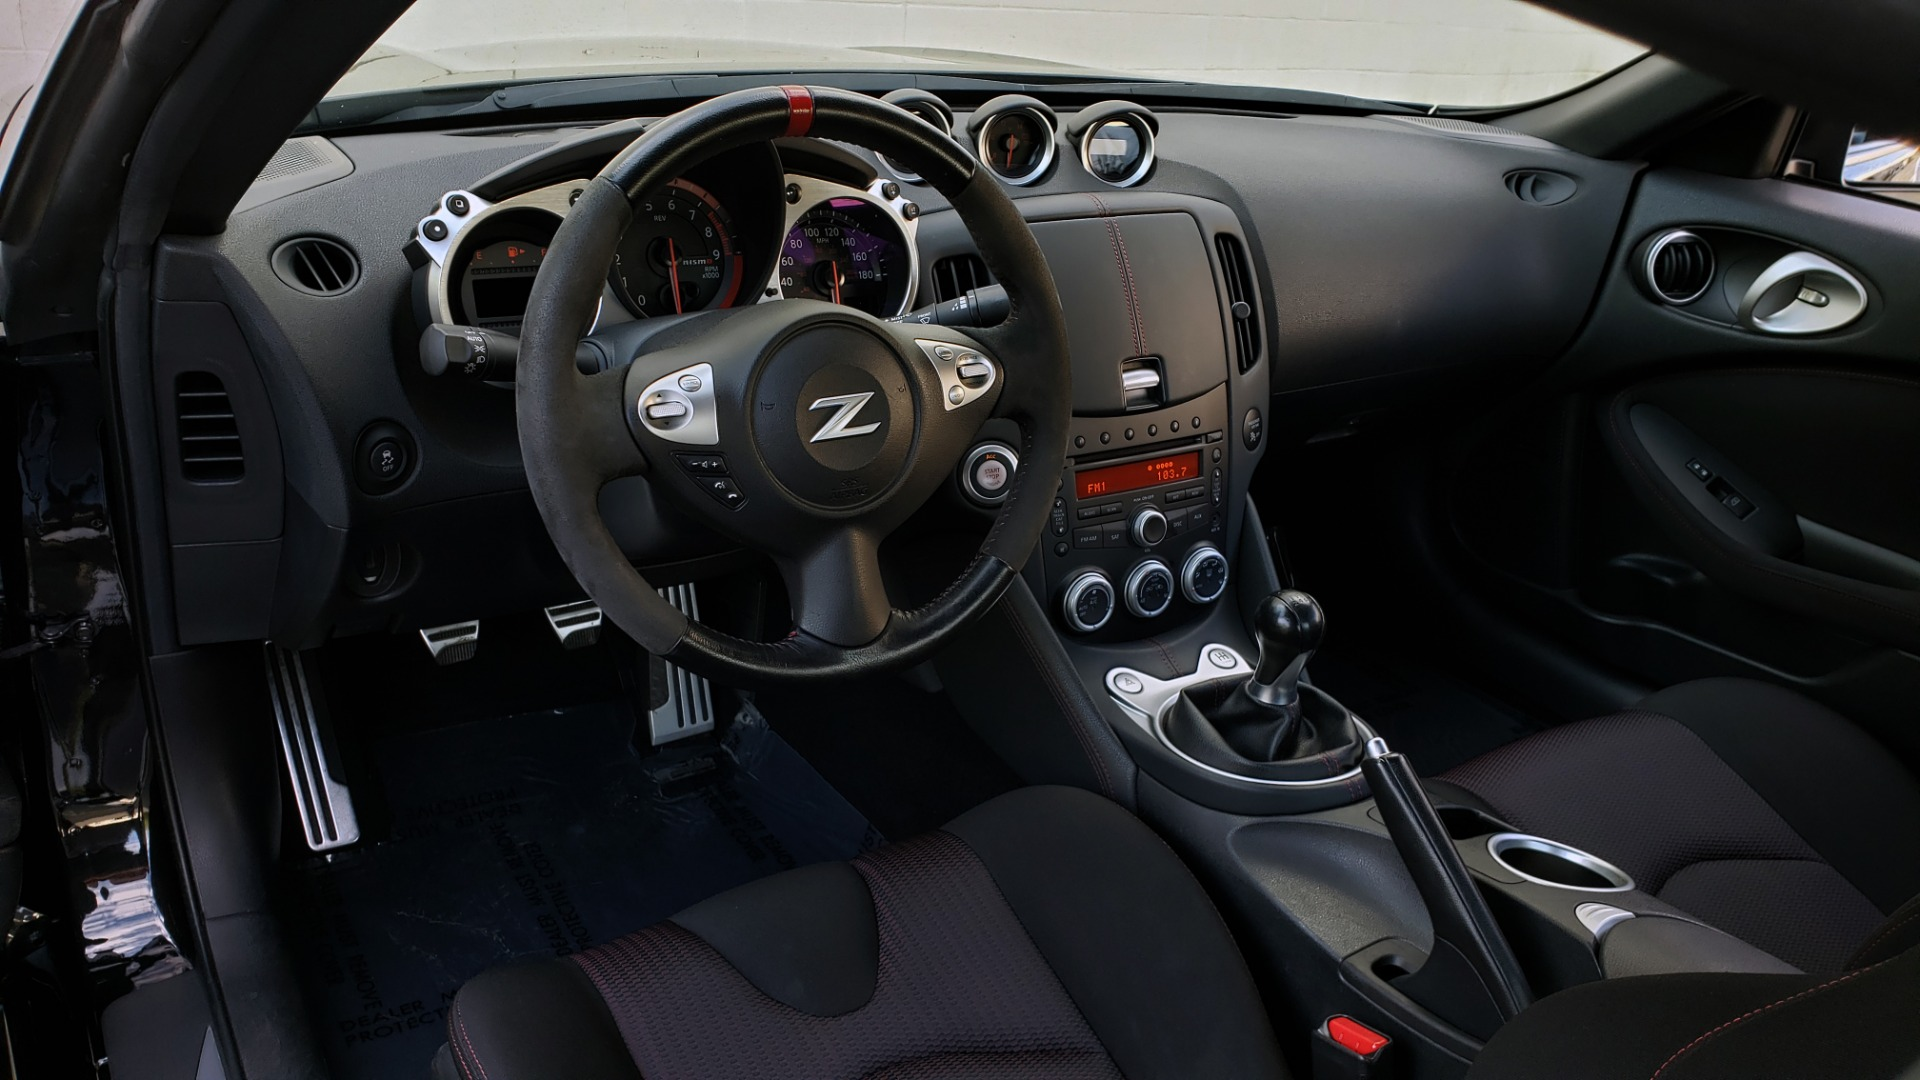 Used 2014 Nissan 370Z NISMO / 6-SPD MAN / BOSE / 6-DISC CHANGER / NISMO MATS / REARVIEW for sale Sold at Formula Imports in Charlotte NC 28227 39